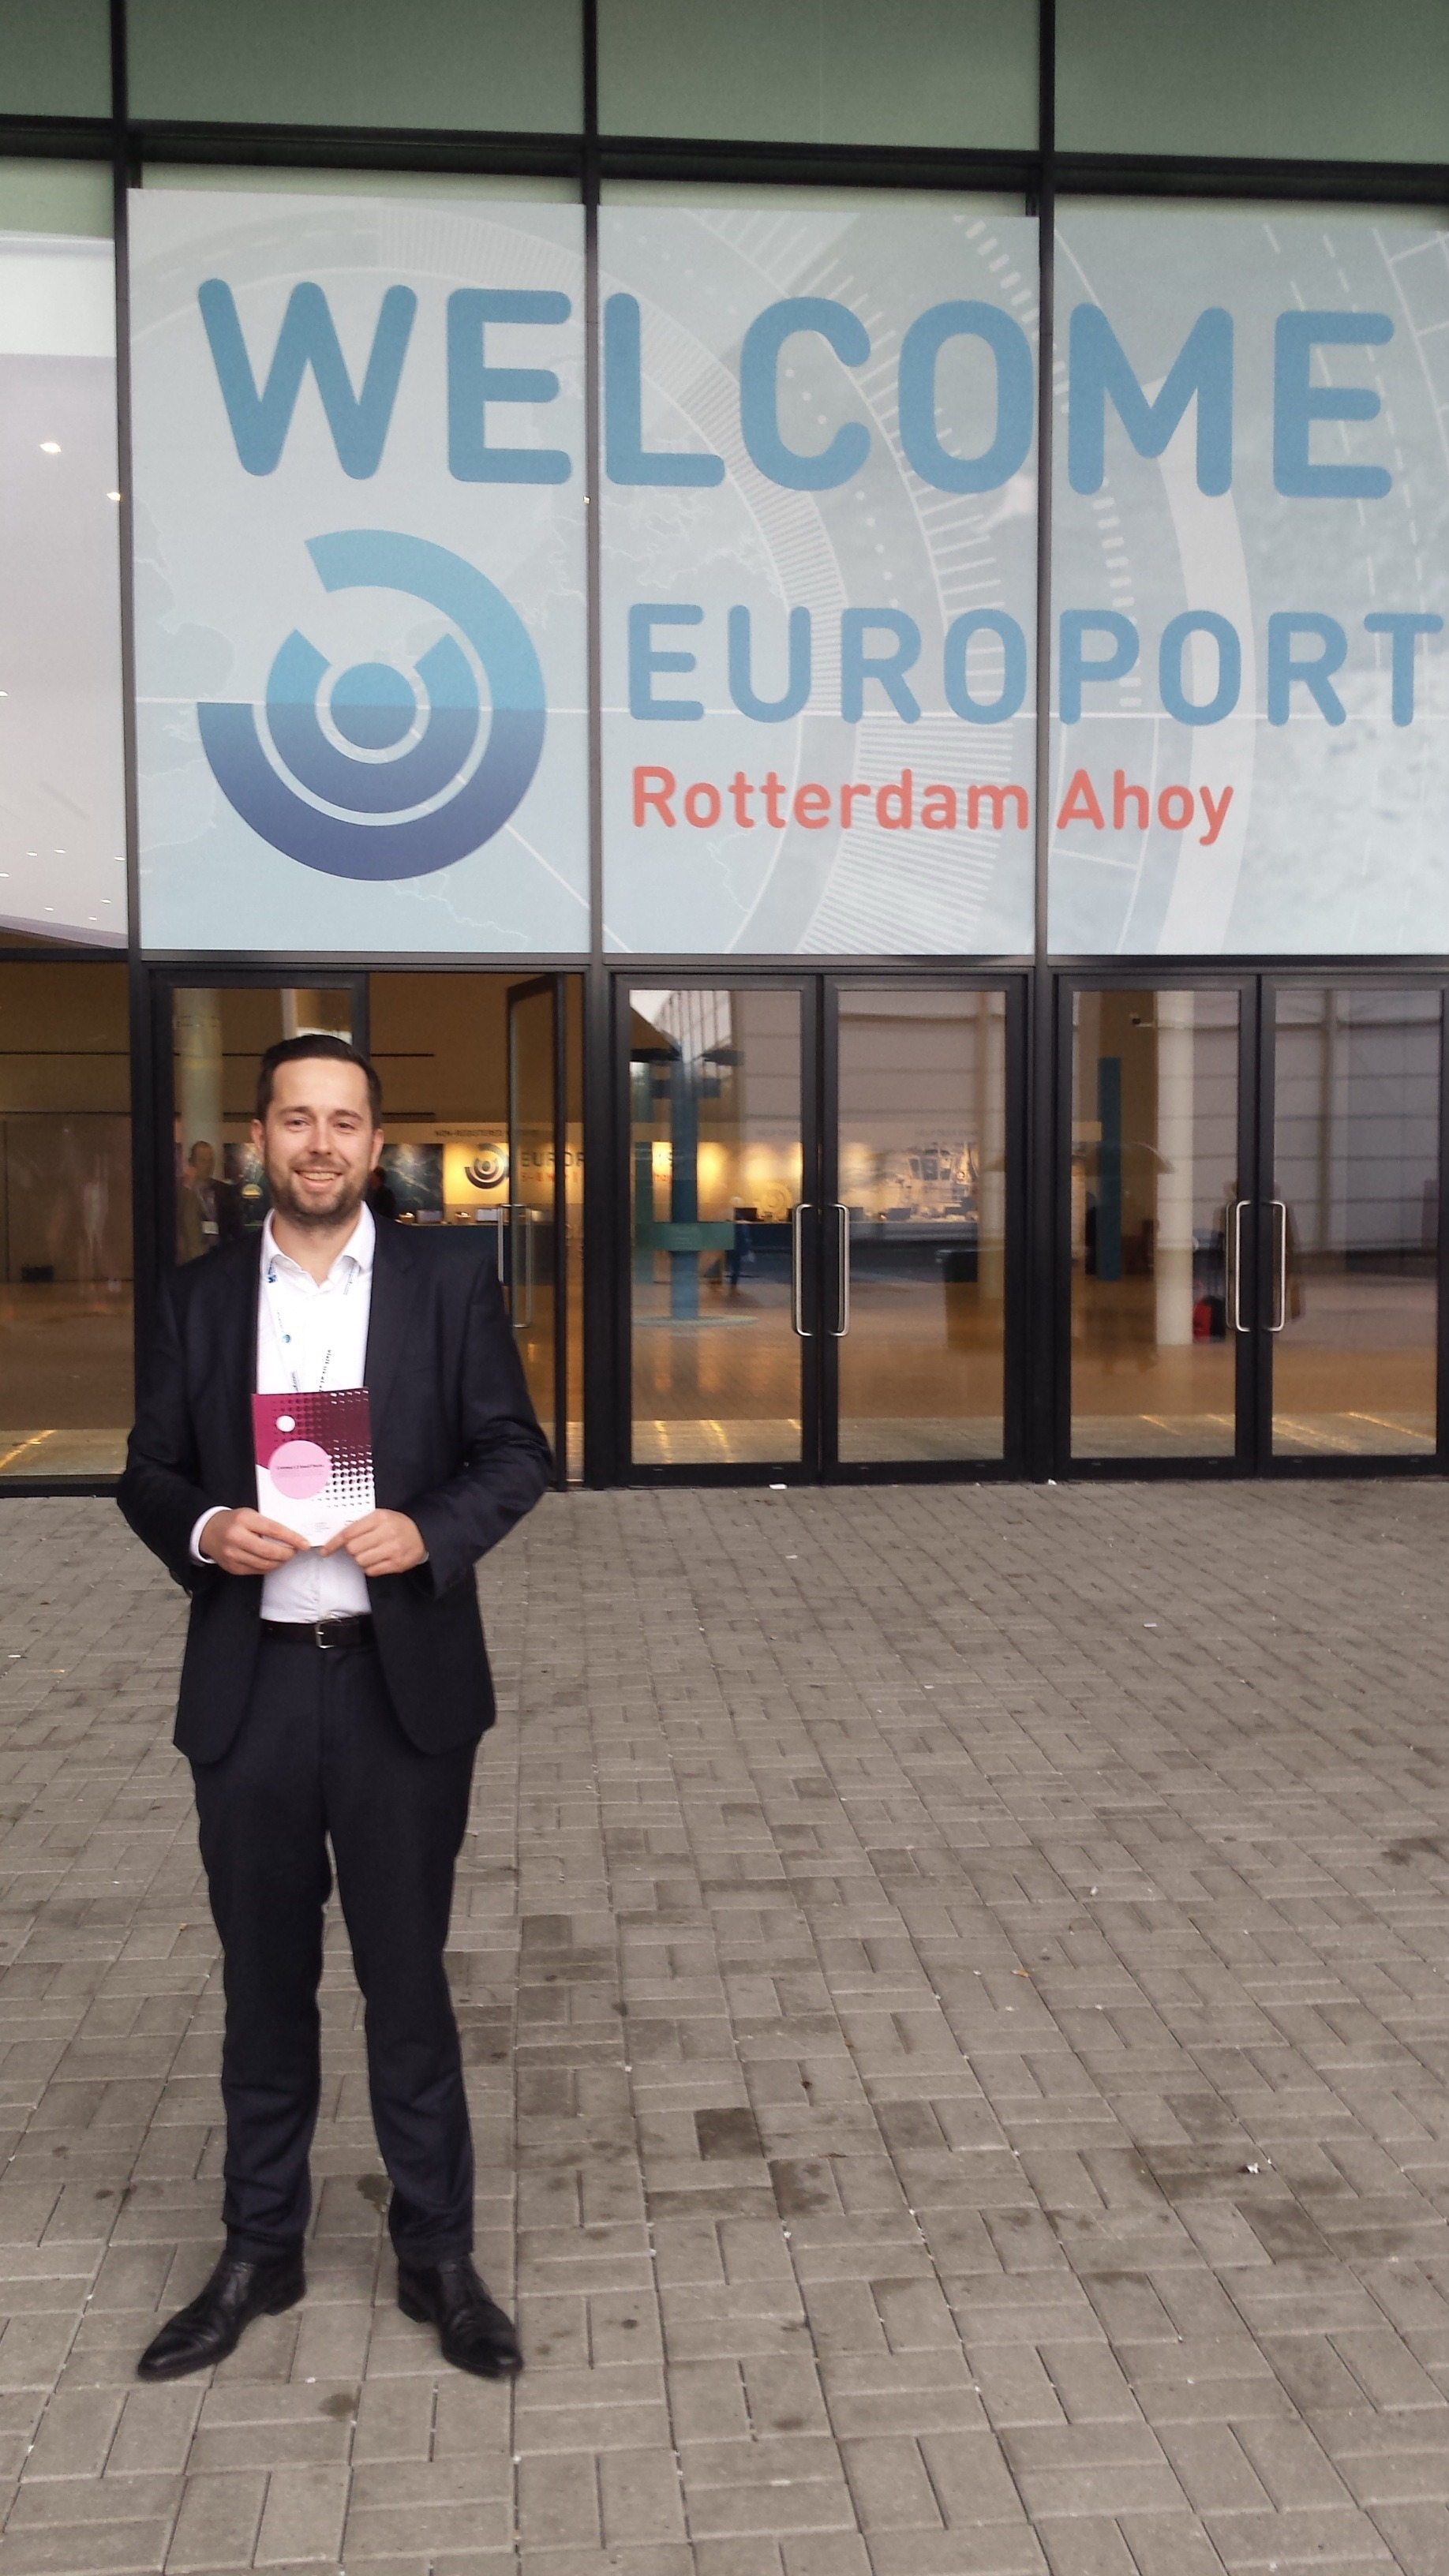 WP 6.4 – International Match Making Event, Europort 2019 in Rotterdam